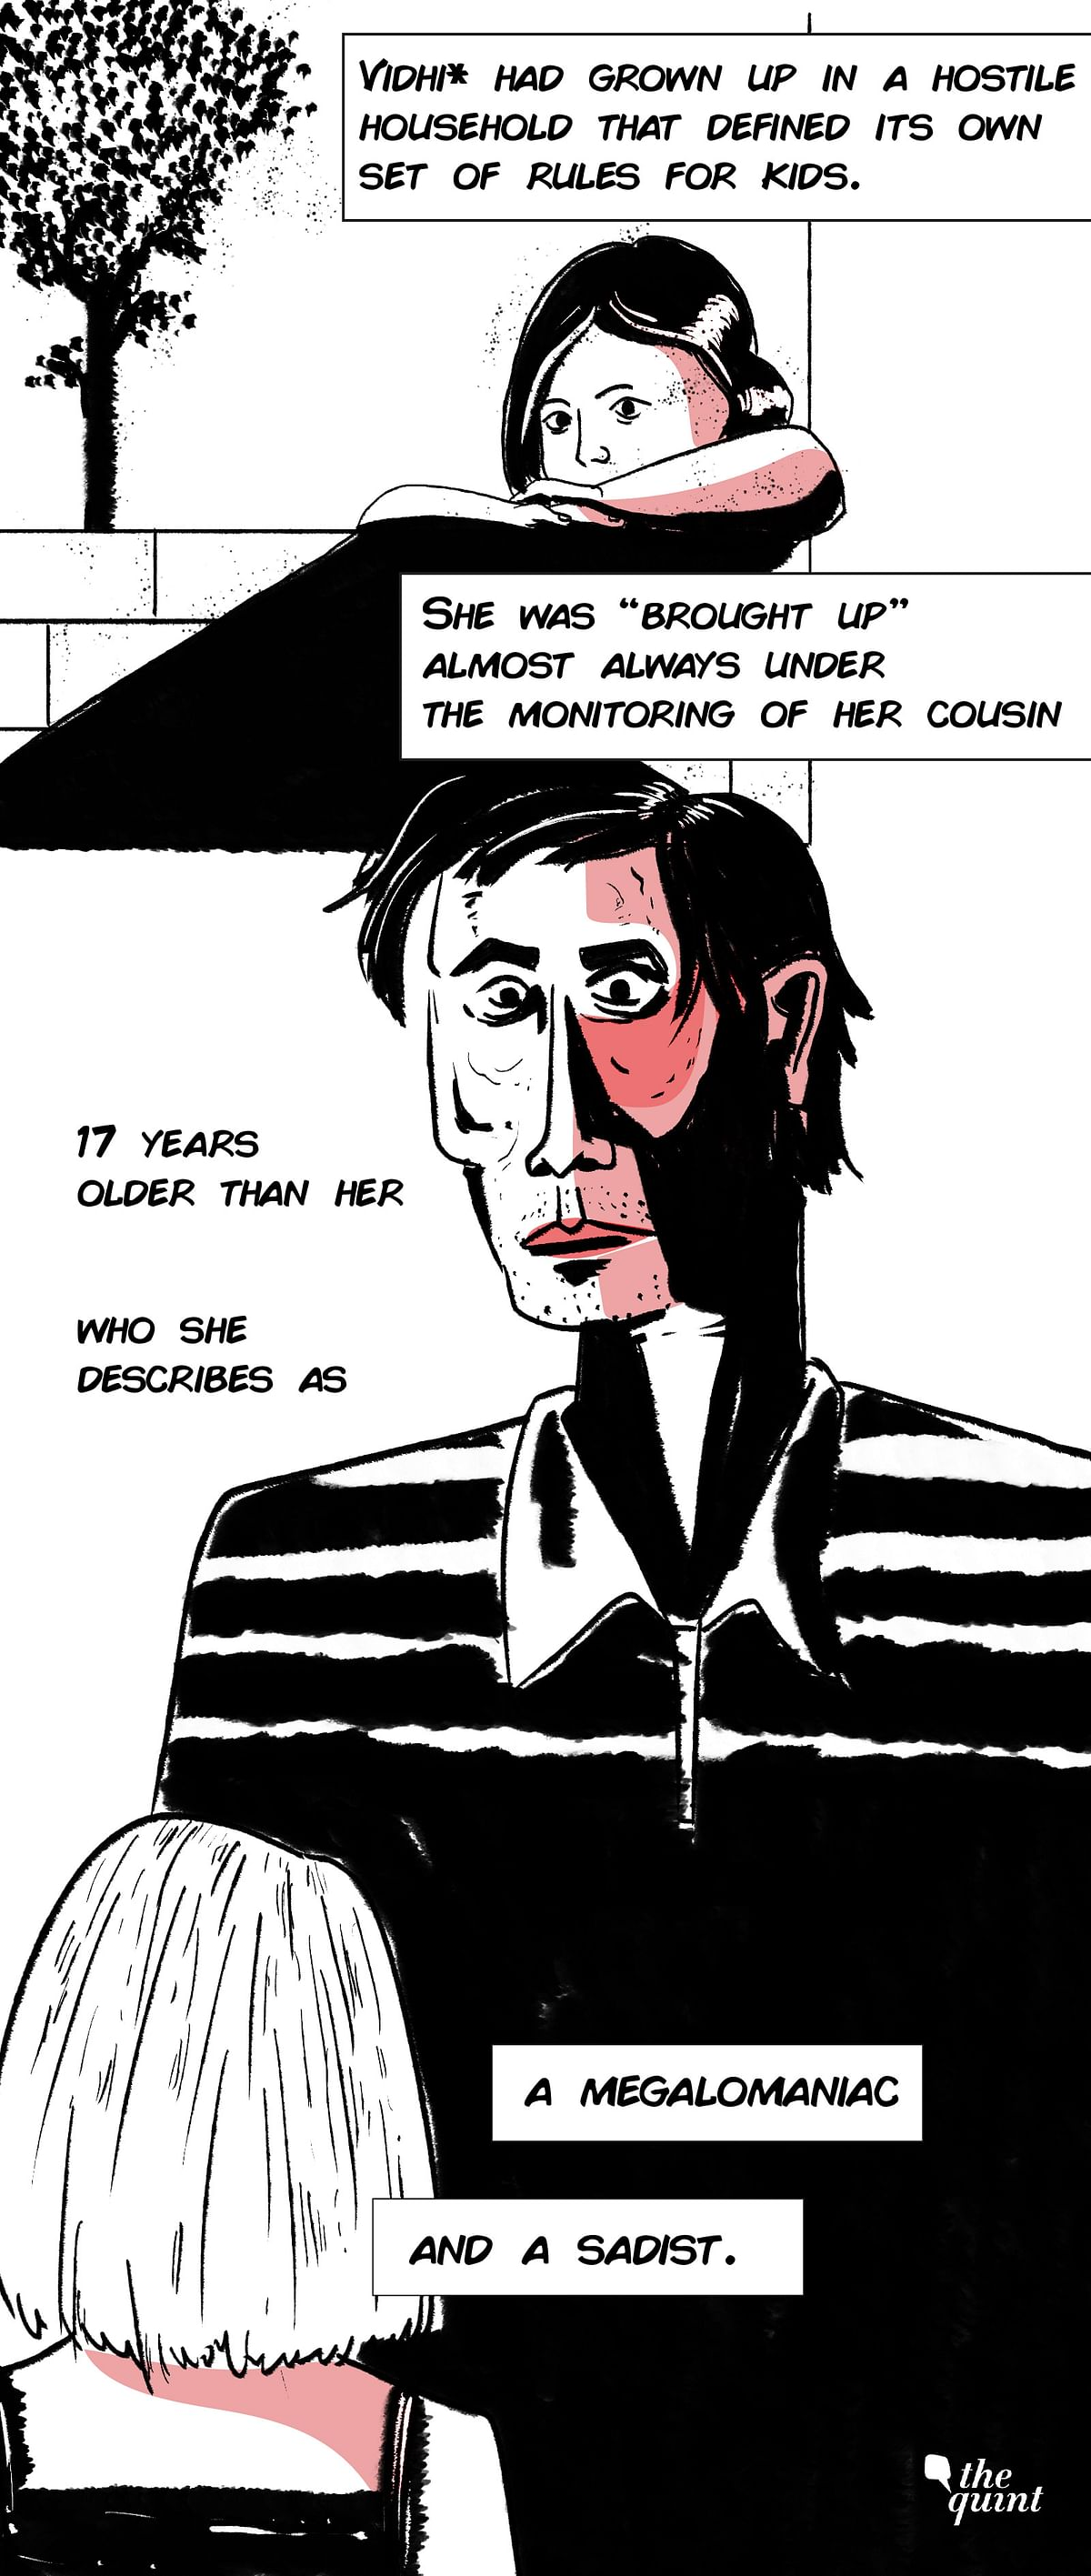 Graphic Novel | The Fight Not About Us: Child Sex Abuse Survivors